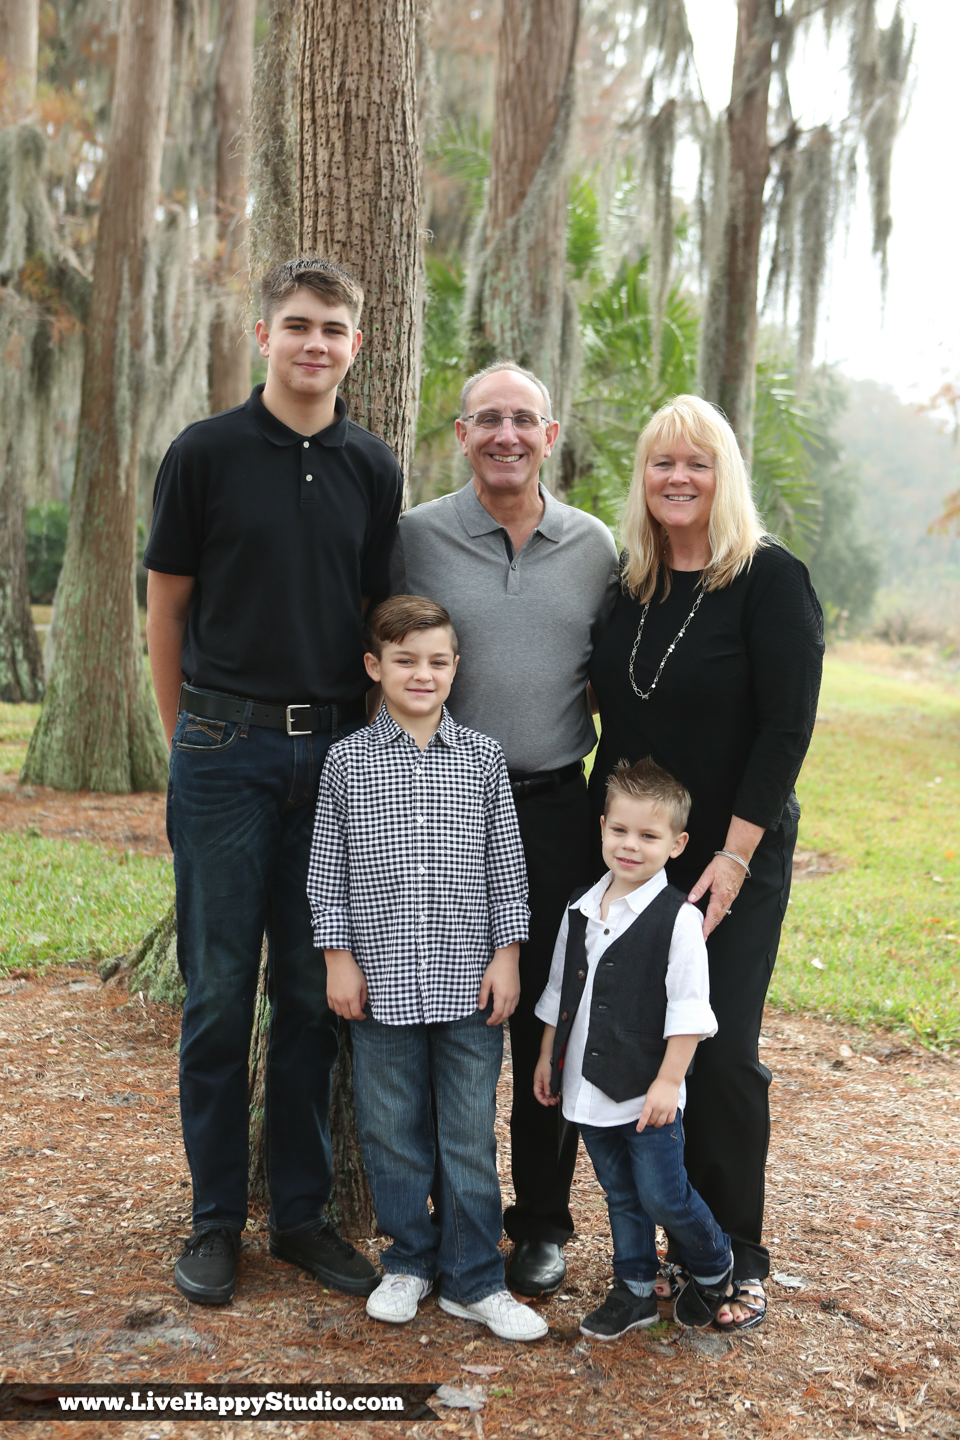 www.livehappystudio.com-family-session-photography-orlando--9.jpg